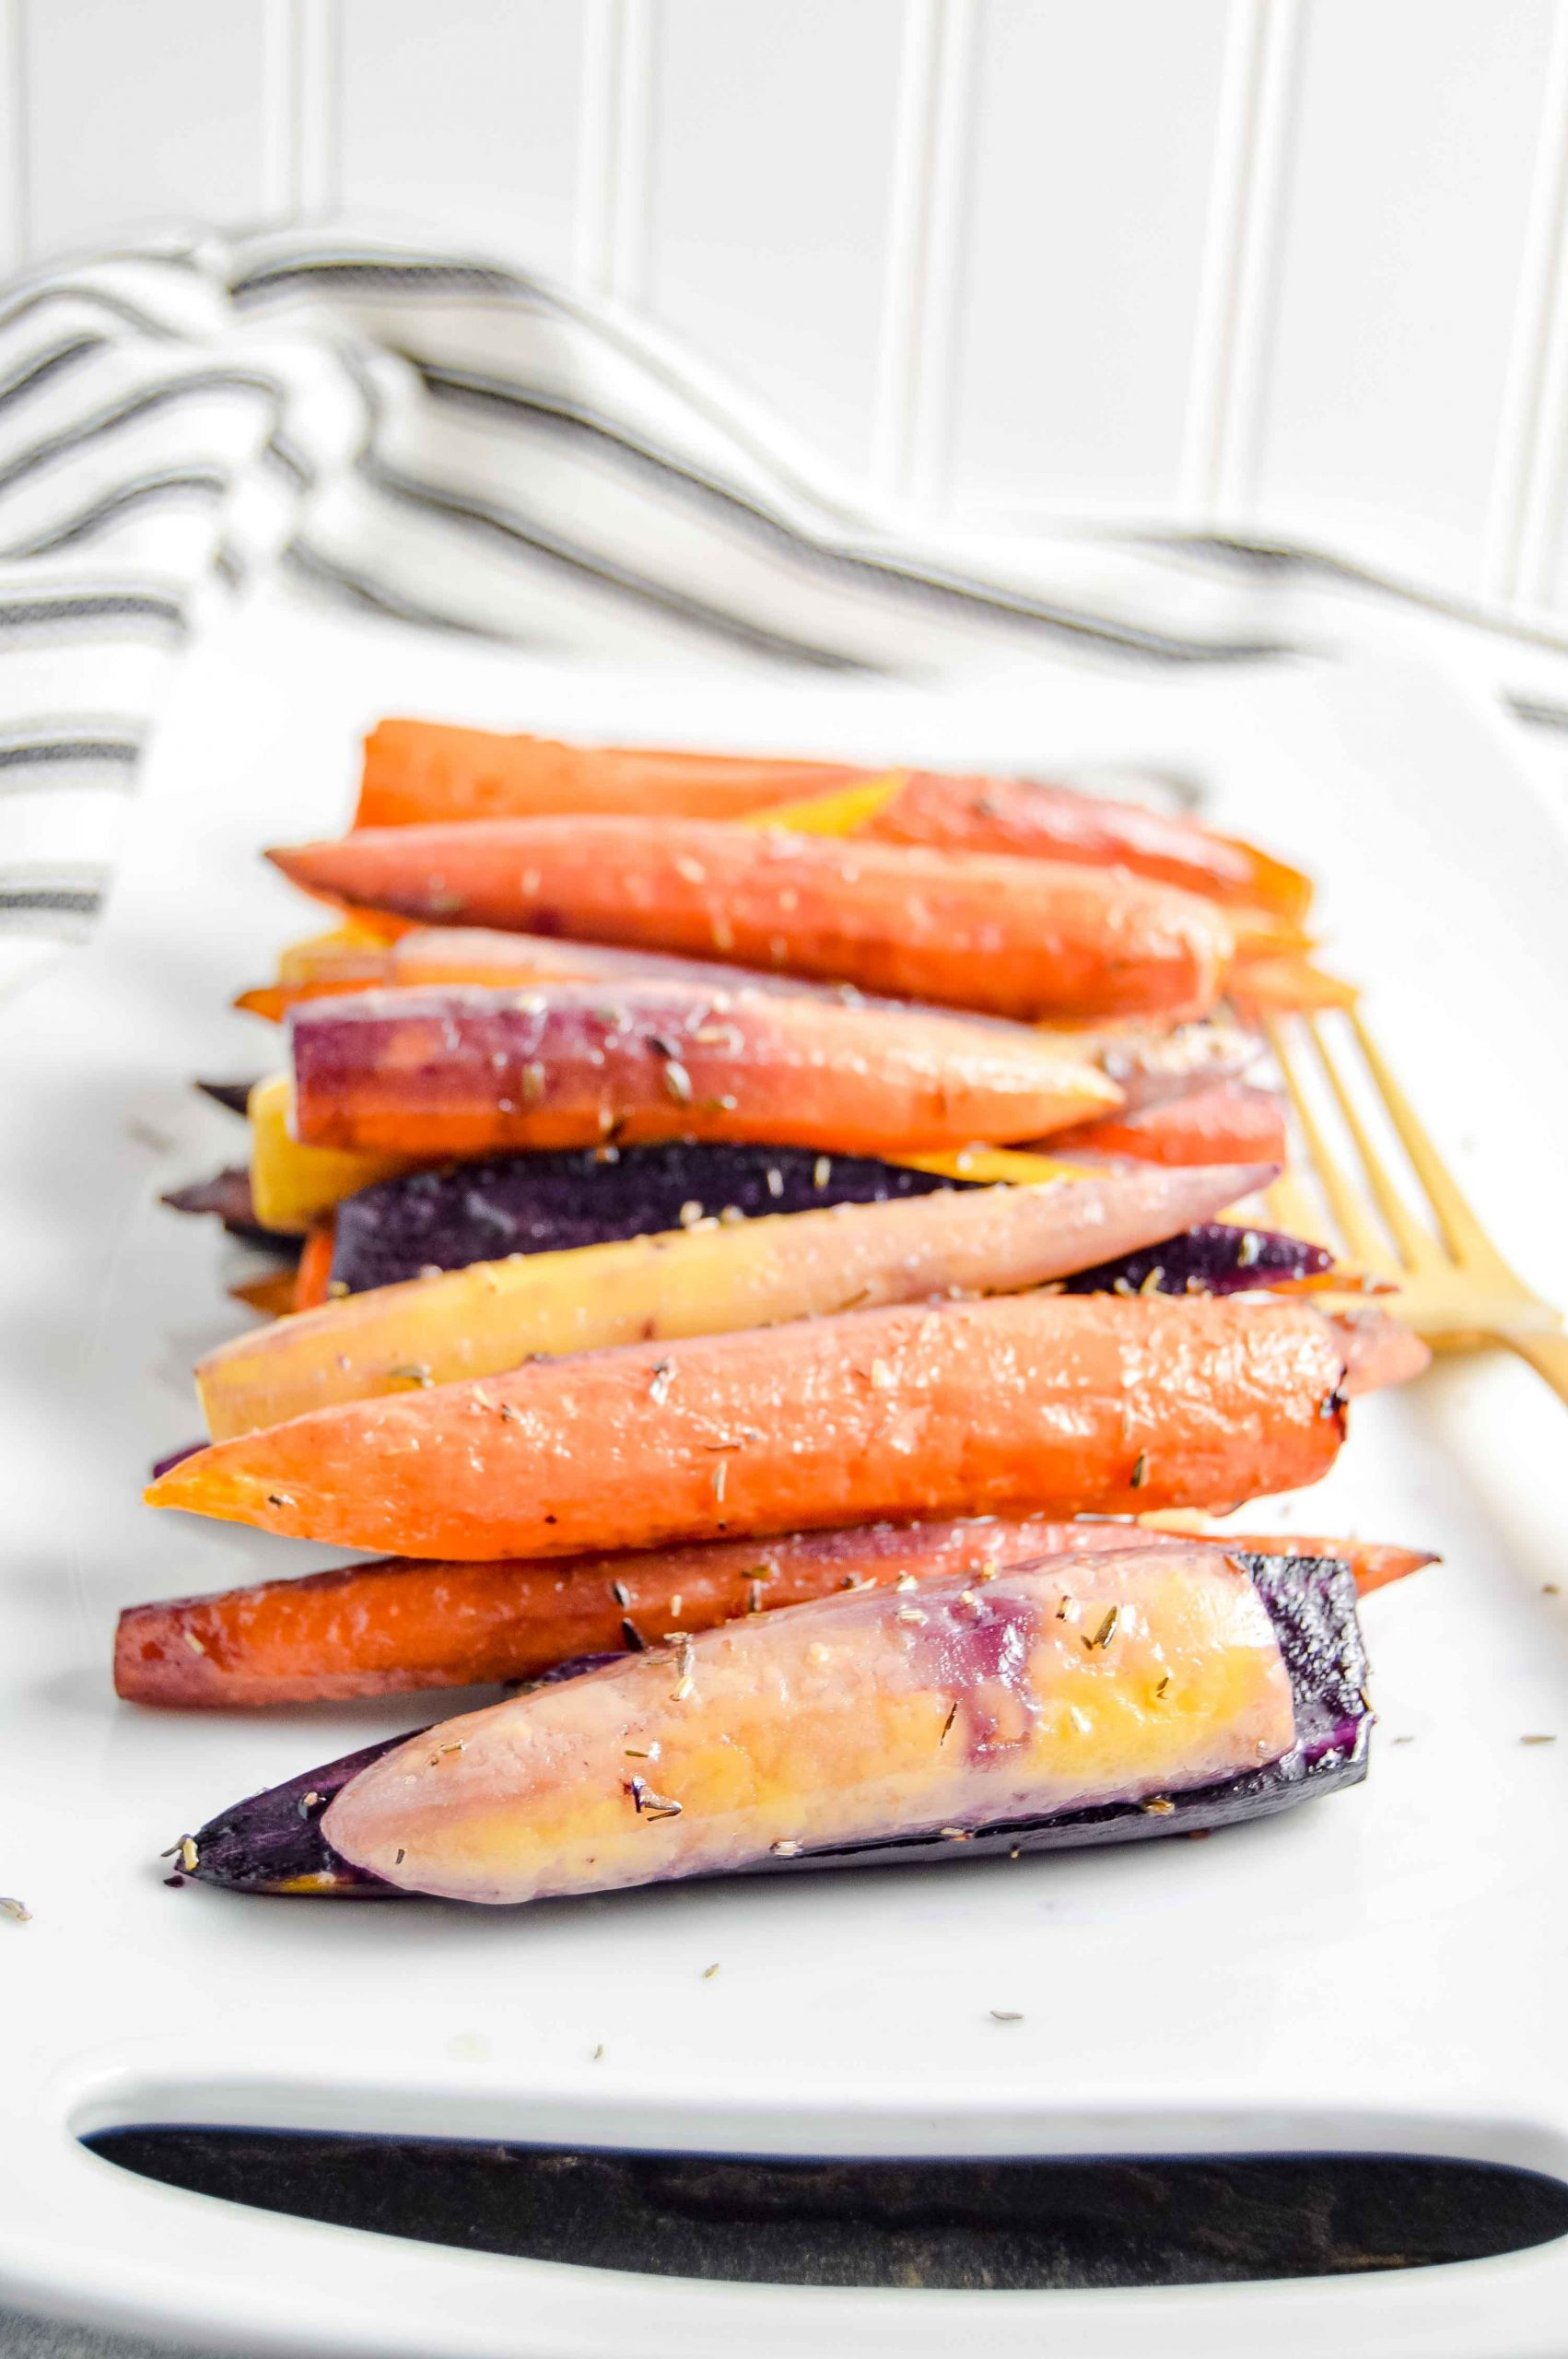 Image of a side angle view of Perfectly Roasted Carrots on a rectangle white plate with a gold fork.  The plate sites on a gray blue background with a black and white striped towel in the top left corner.   https://www.atwistedplate.com/perfectly-roasted-carrots/